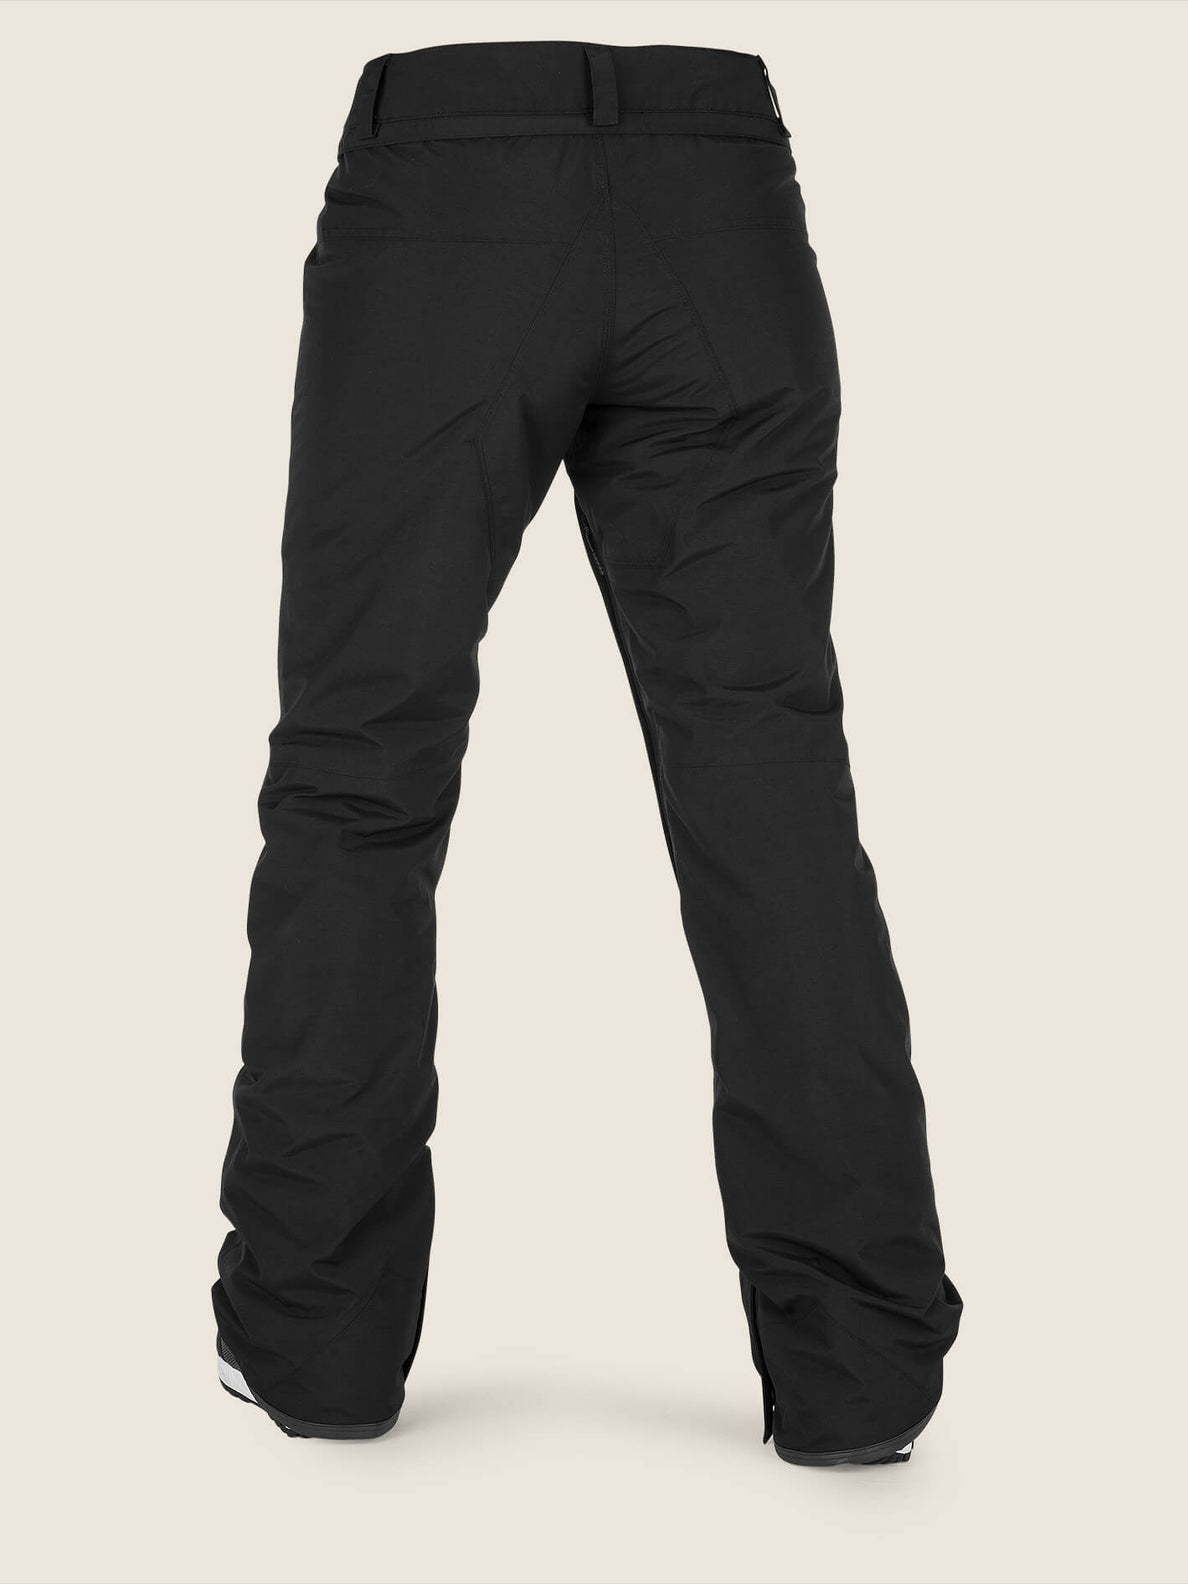 Knox Insulated Gore-tex Pant In Black, Back View